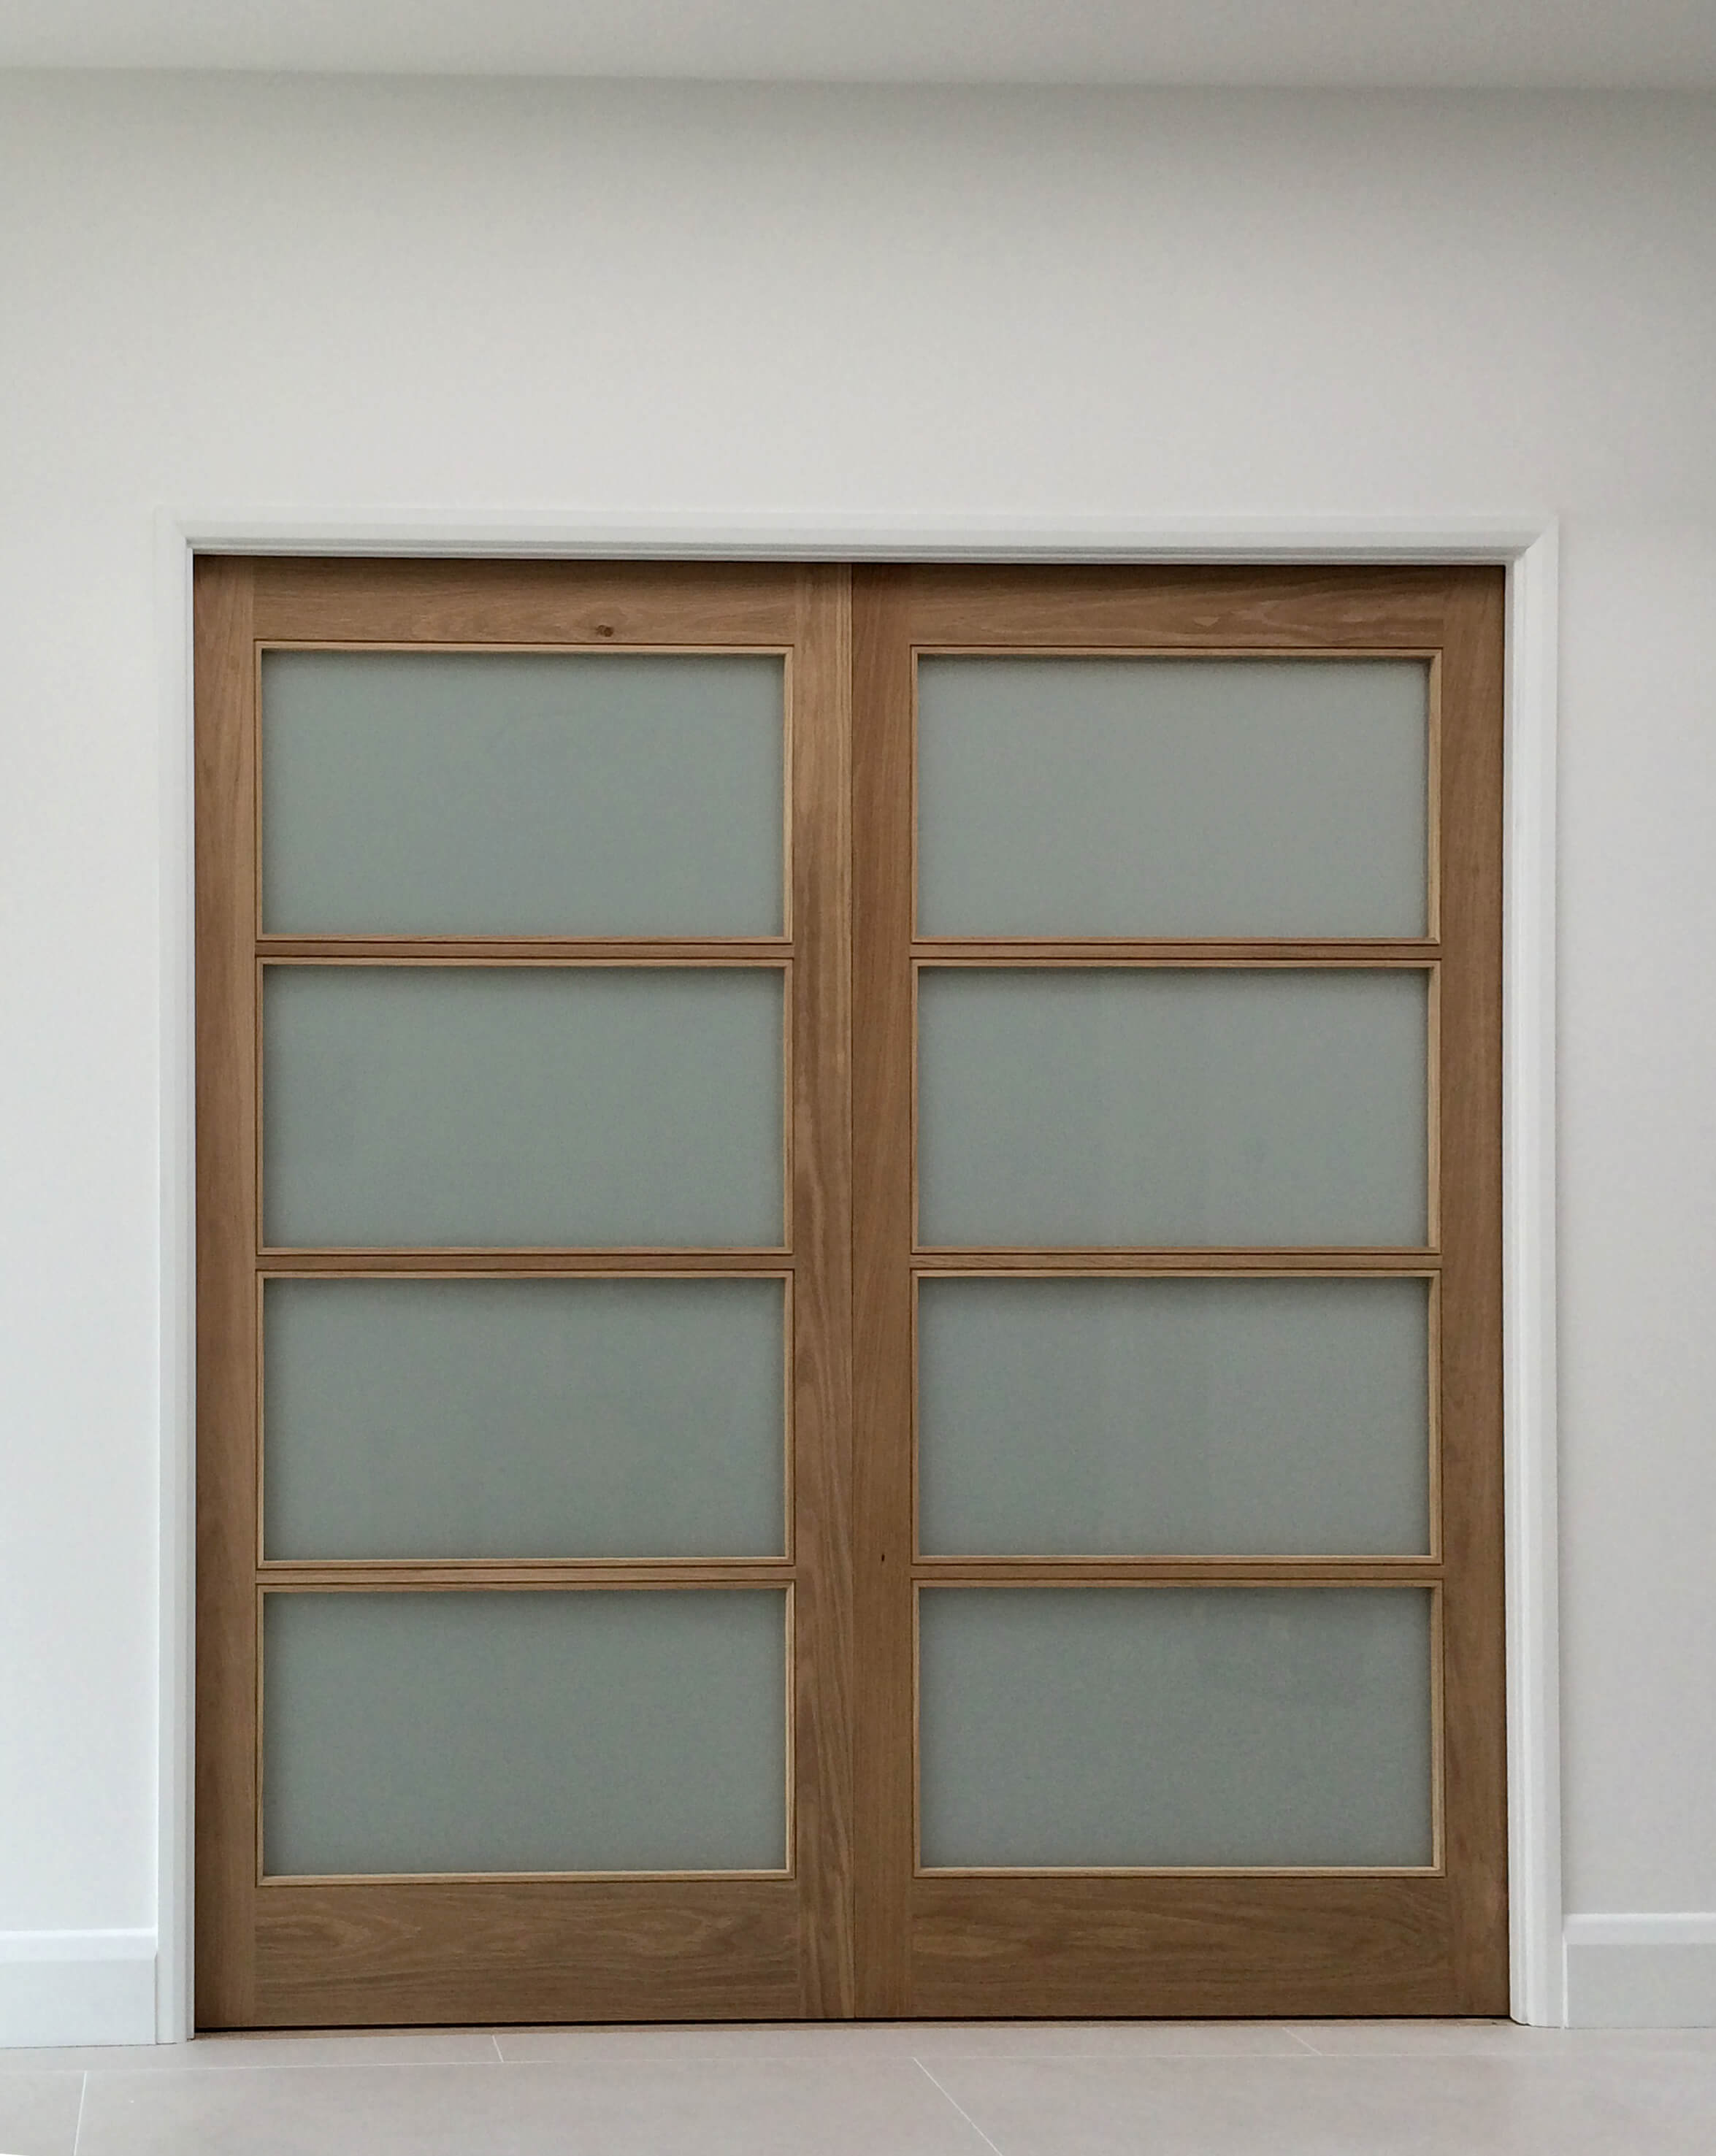 Internal Sliding Glass Doors London Door Company